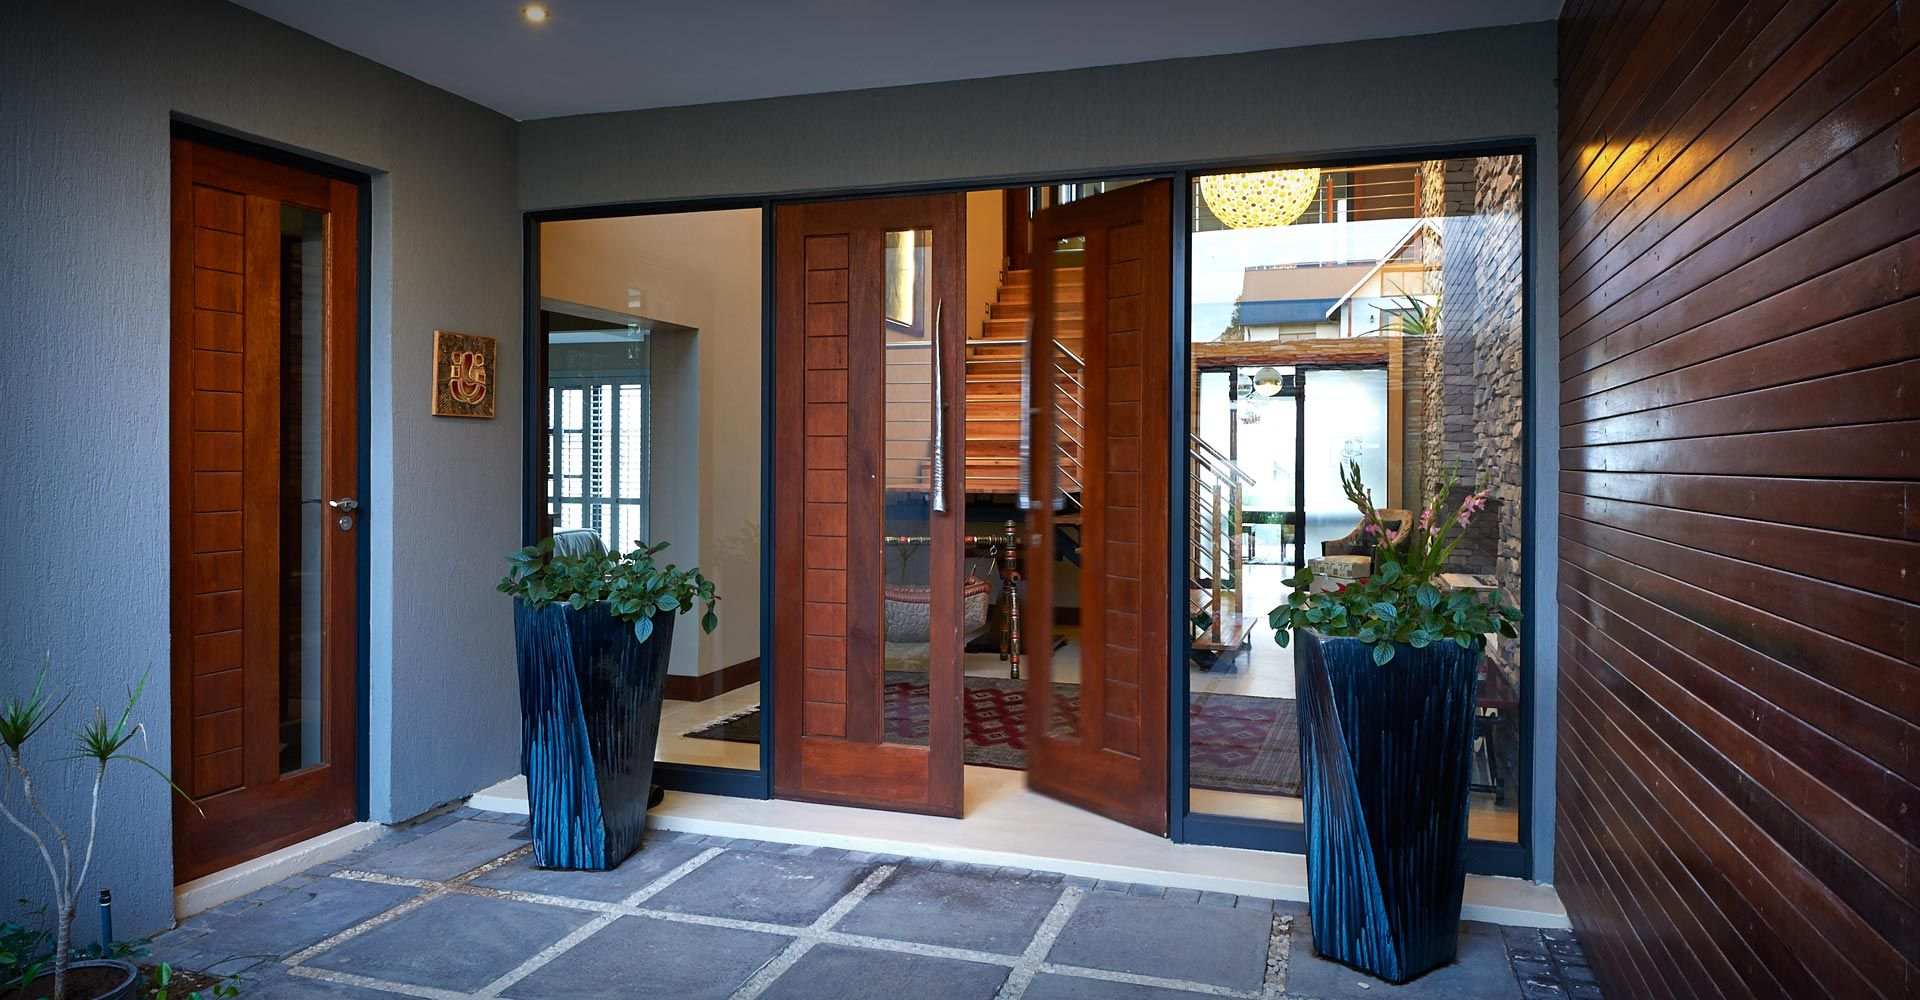 Van Acht Inspiration Gallery Is All You Need For Inspiration For Your Project. See Van Acht Windows And Doors In Action. : door entrances - Pezcame.Com